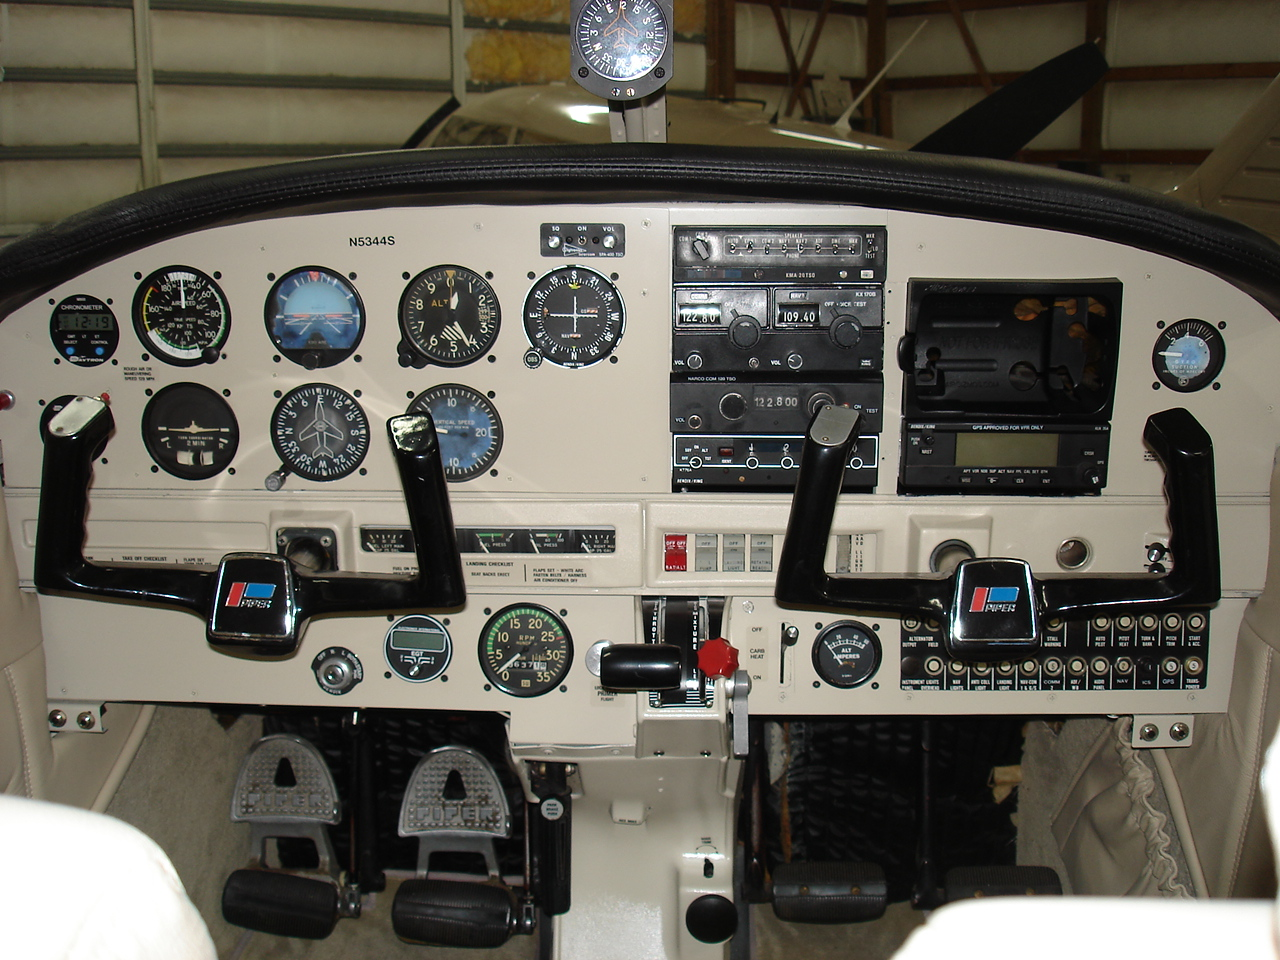 piper 140 wiring diagram piper get free image about wiring diagram